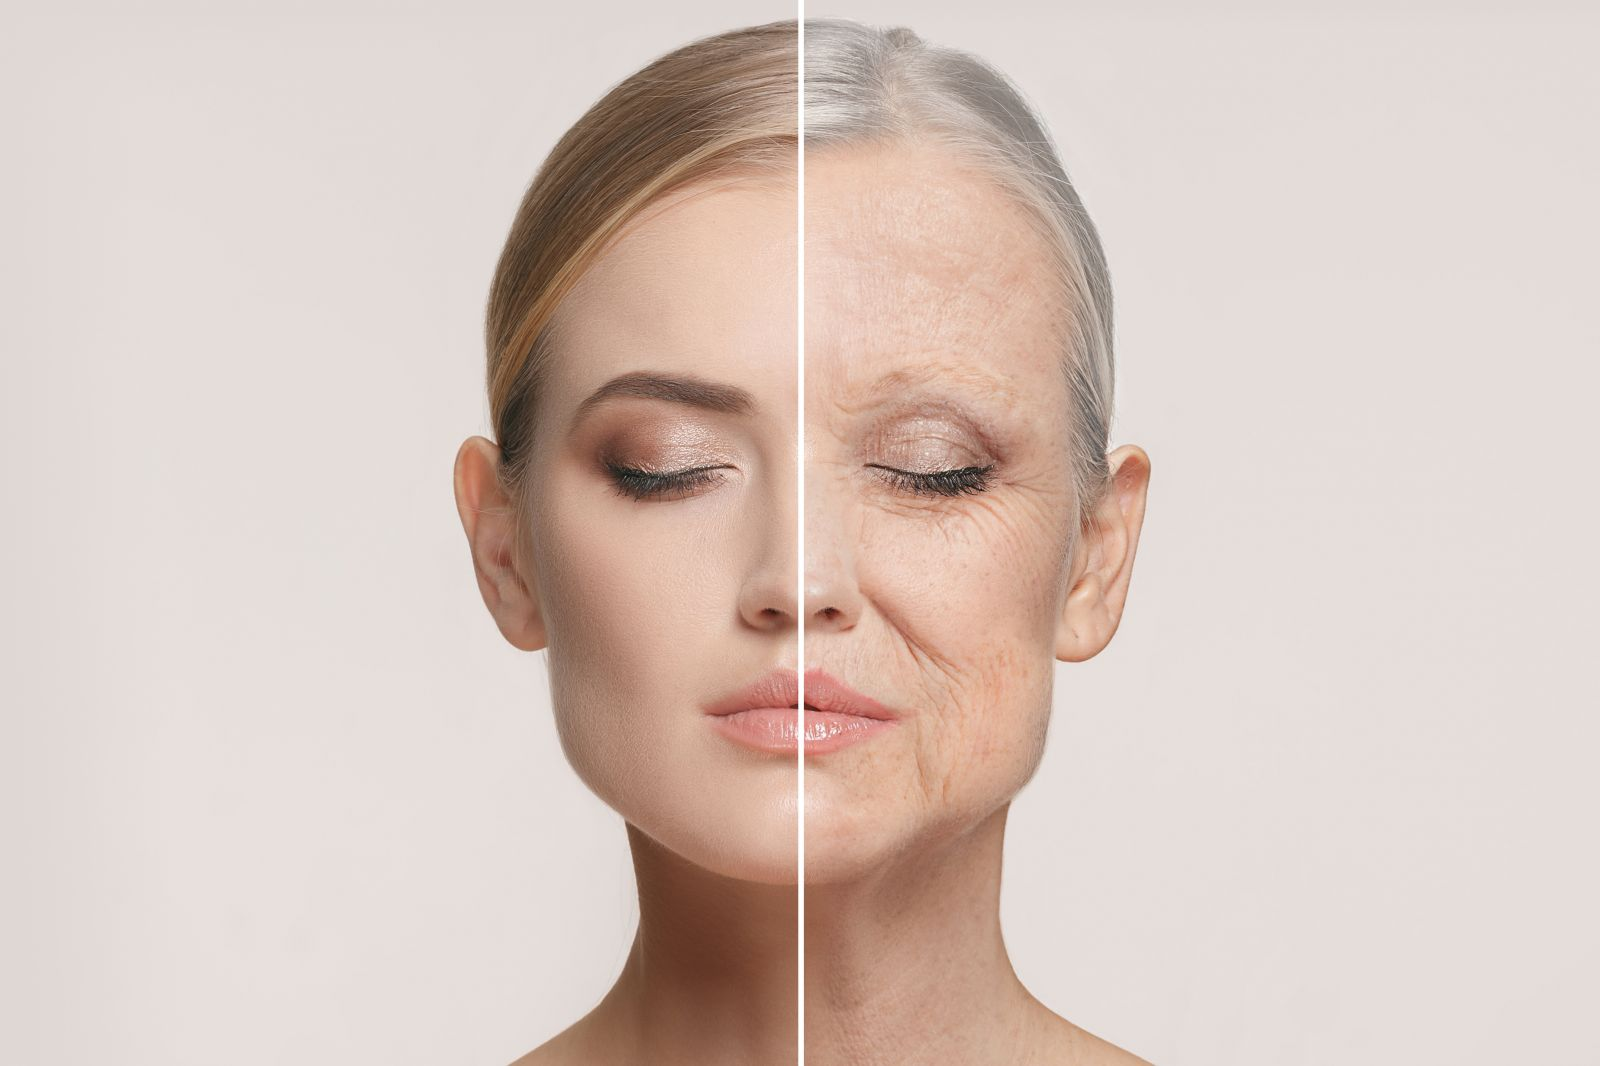 How to Reduce Wrinkles Without Pain and Surgery